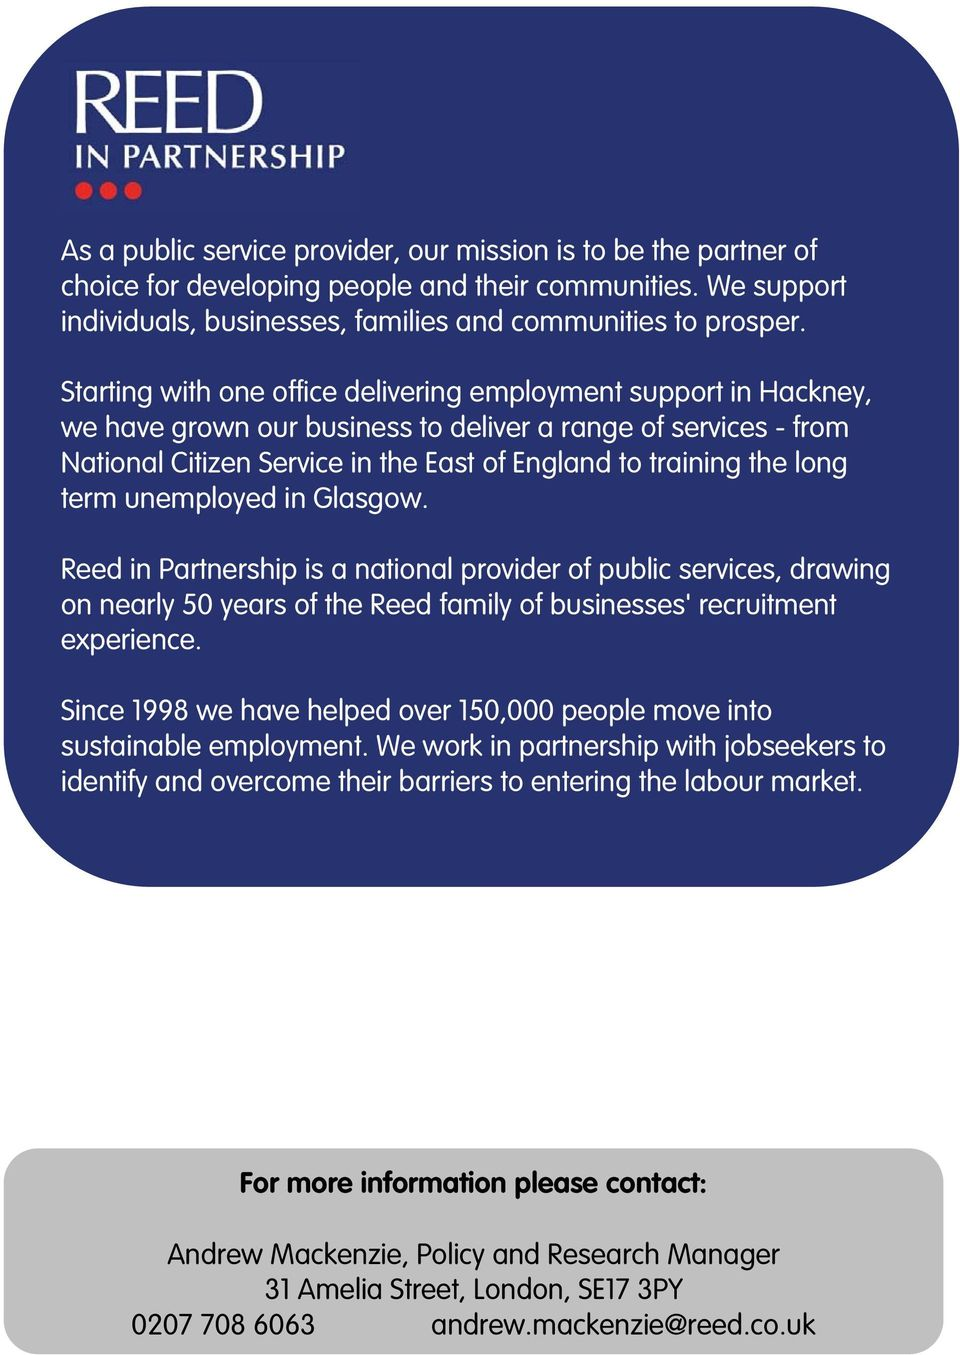 long term unemployed in Glasgow. Reed in Partnership is a national provider of public services, drawing on nearly 50 years of the Reed family of businesses' recruitment experience.